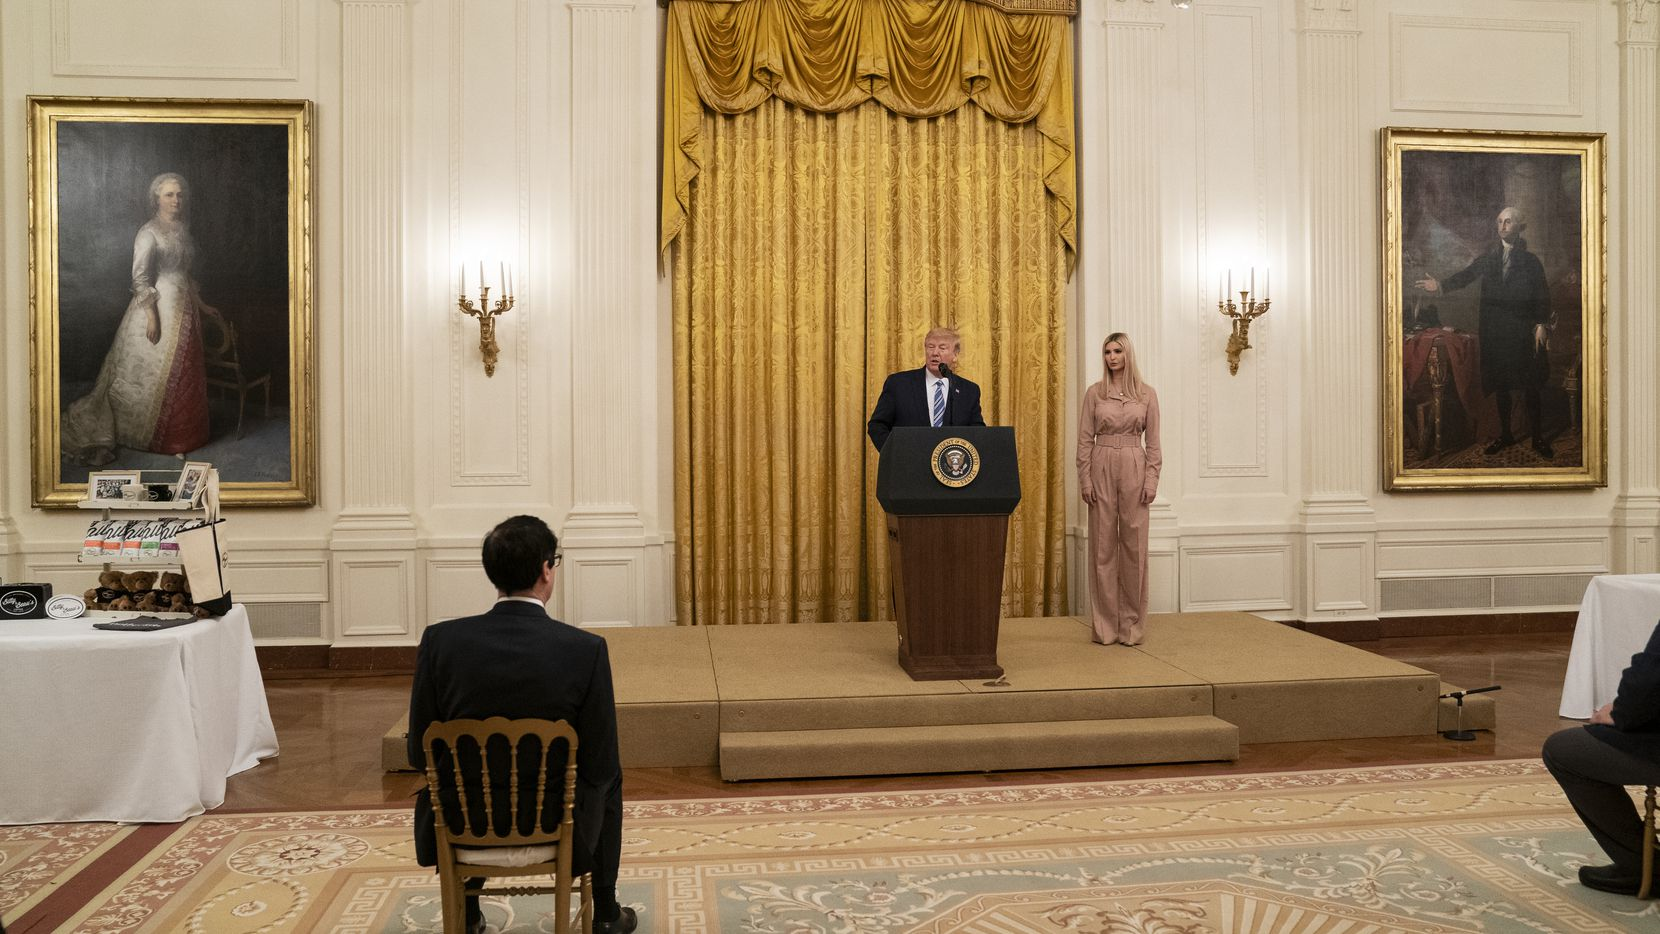 Treasury Secretary Steven Mnuchin, left, and Ivanka Trump listen as President Donald Trump speaks during an event about the Paycheck Protection Program used to support small businesses during the coronavirus outbreak, in the East Room of the White House, Tuesday, April 28, 2020, in Washington. (AP Photo/Evan Vucci)